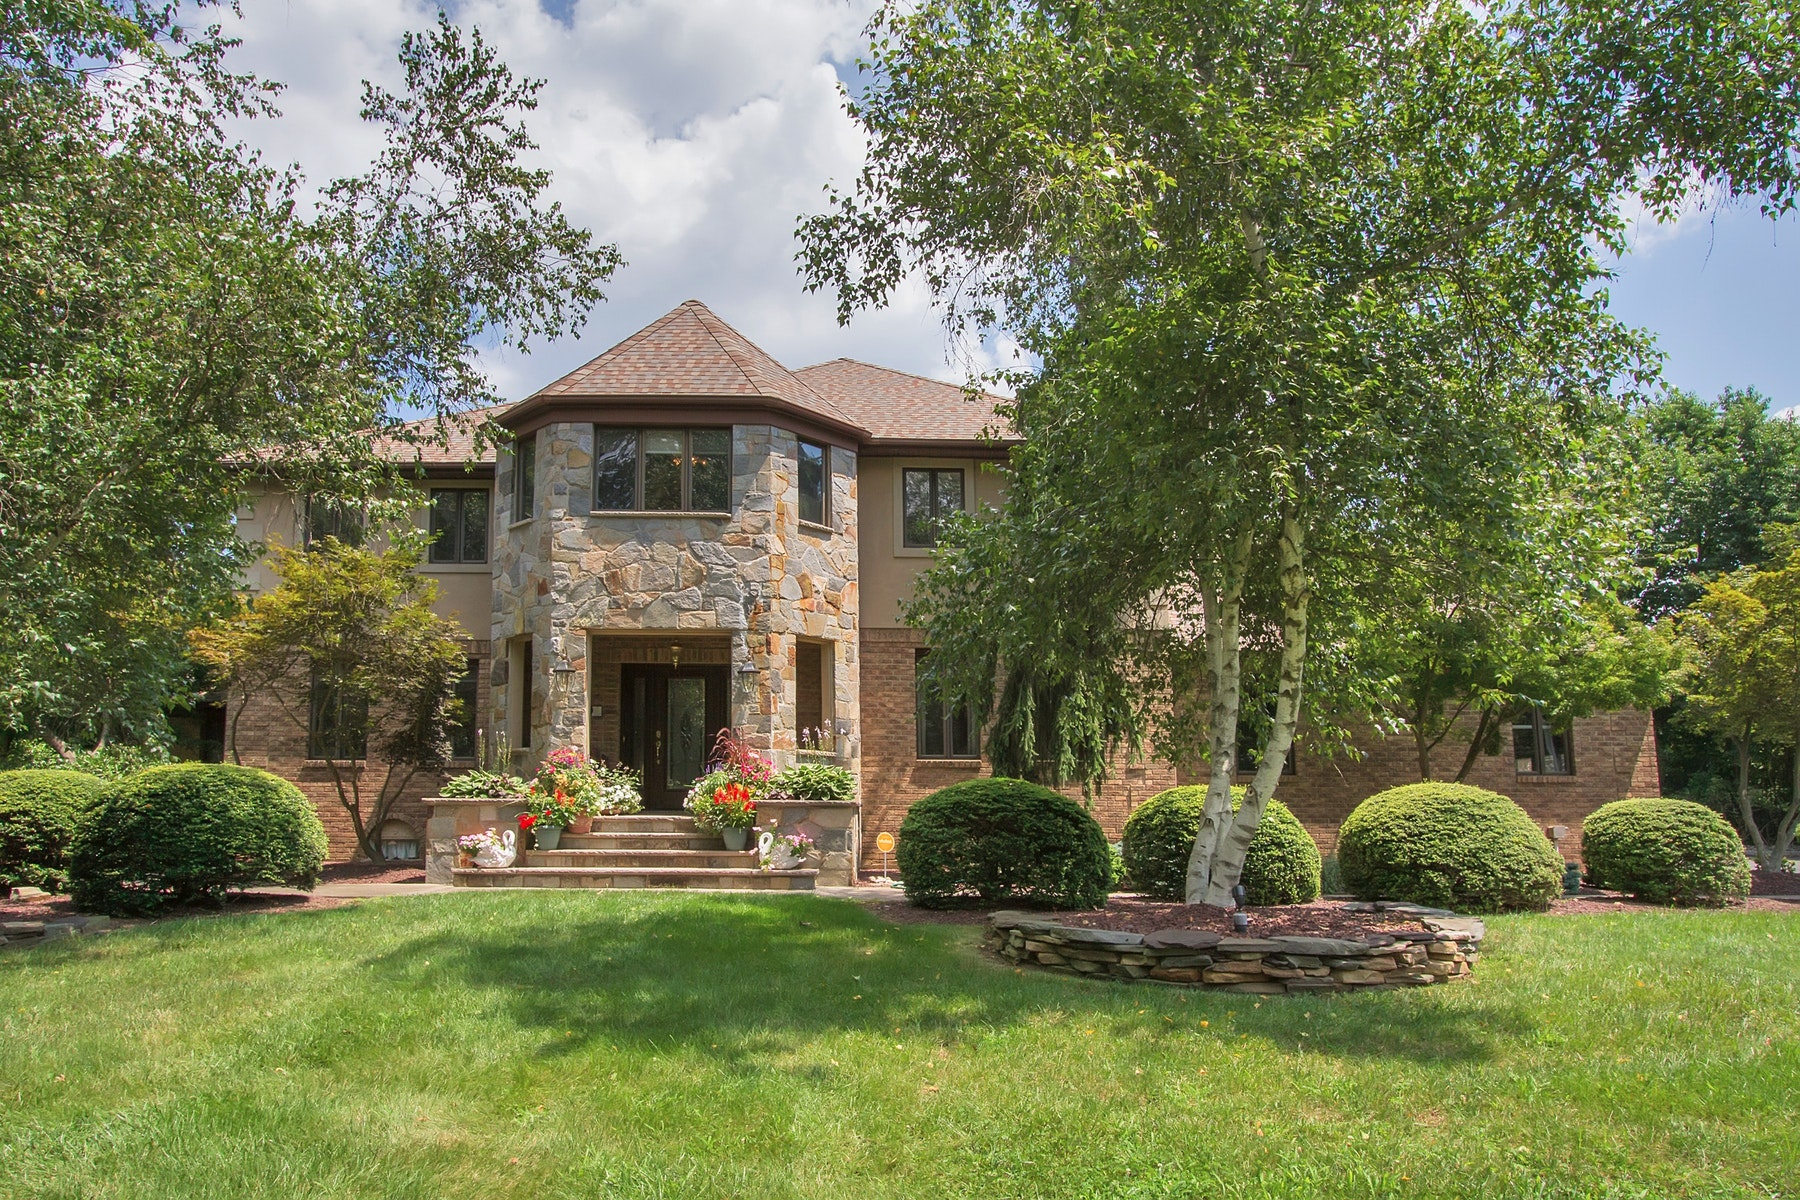 Single Family Home for Sale at Custom Built Private Oasis 5 Armand Court Holmdel, New Jersey 07733 United States